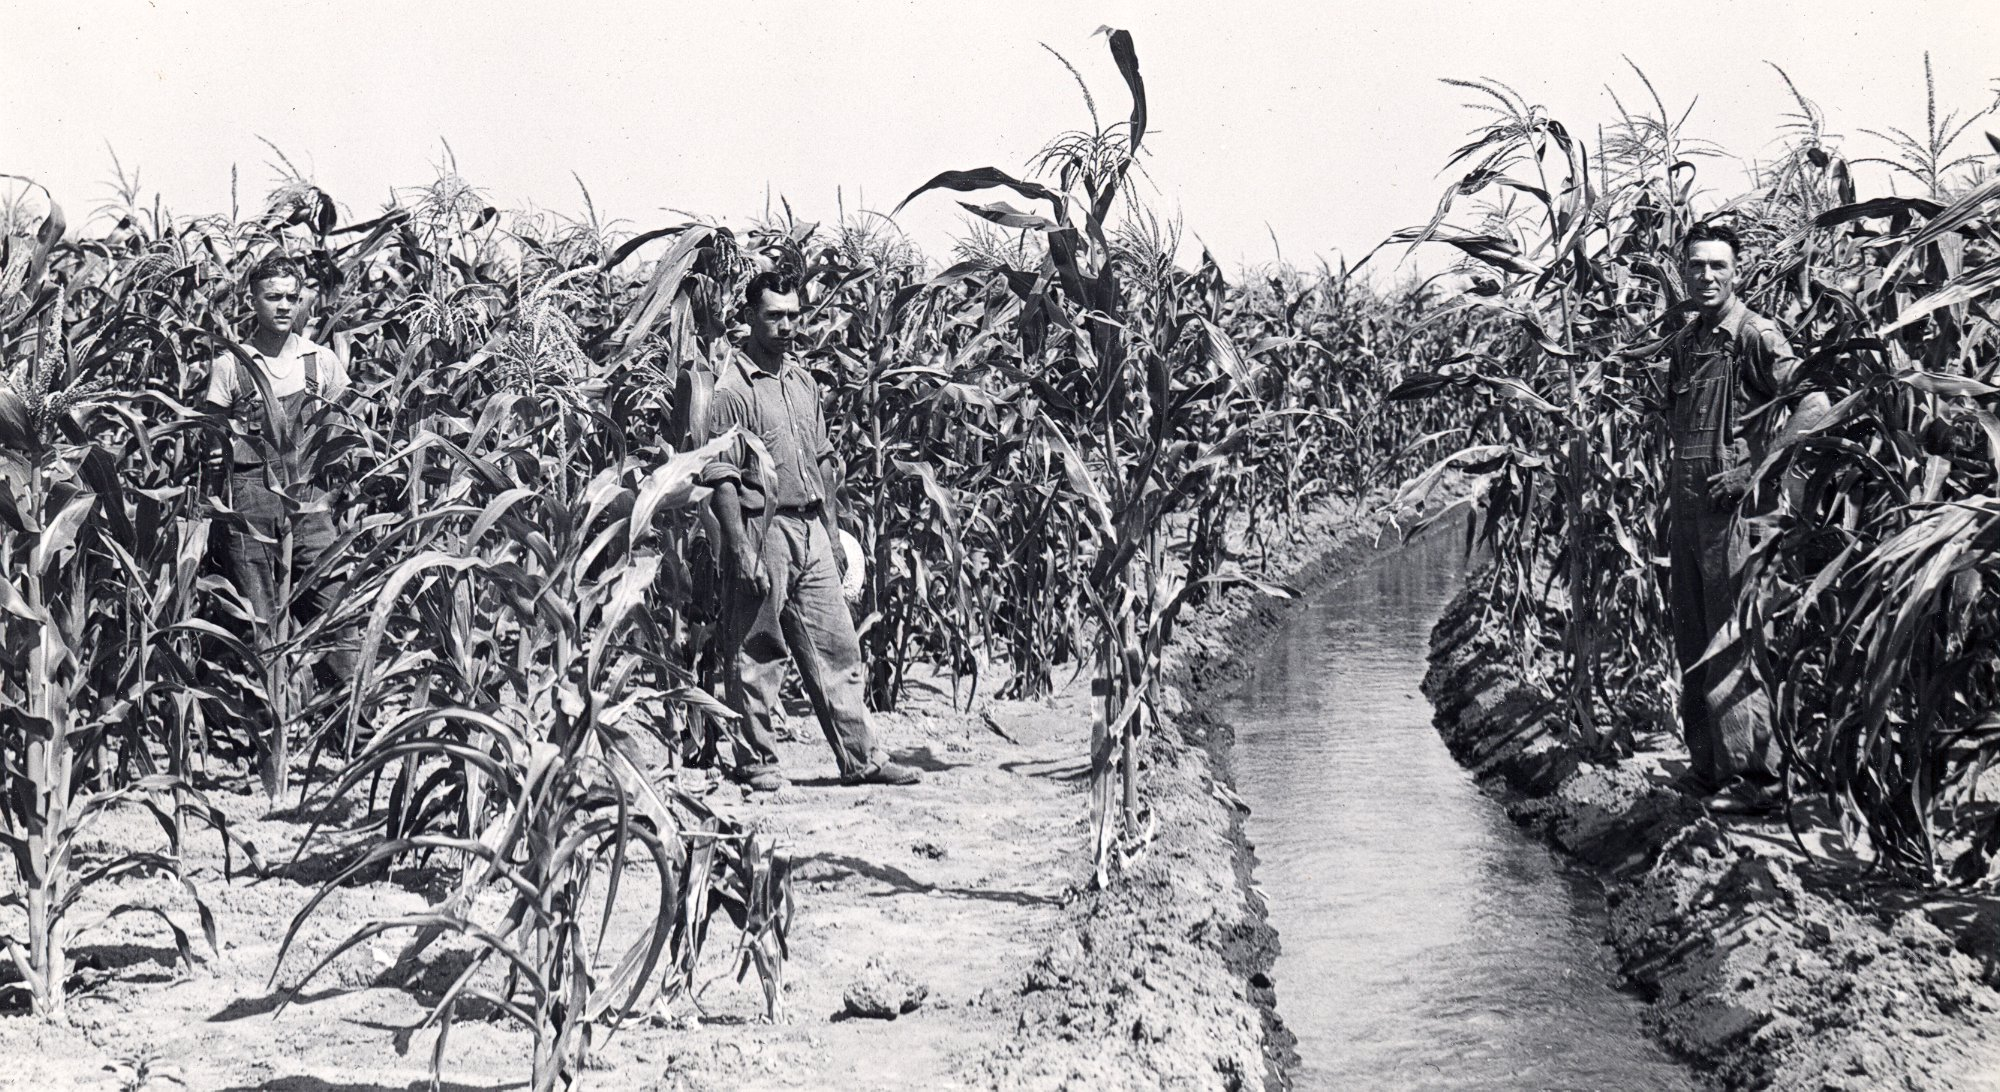 Central marks 75th anniversary of irrigation deliveries from Lake McConaughy